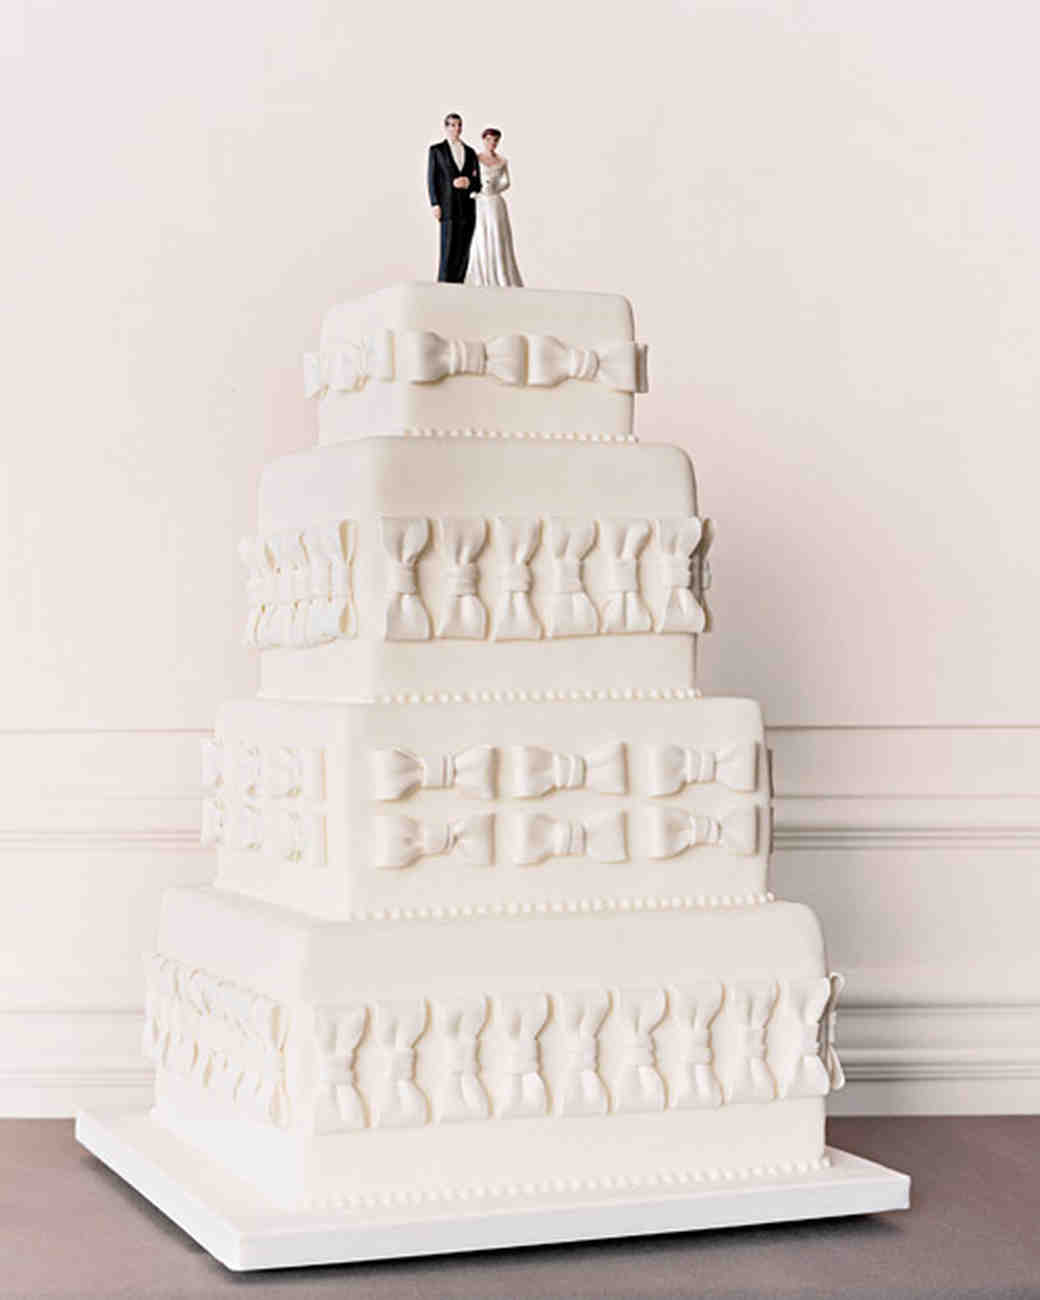 Four-Tiered White Wedding Cake with Traditional Topper and Bow Tie Design